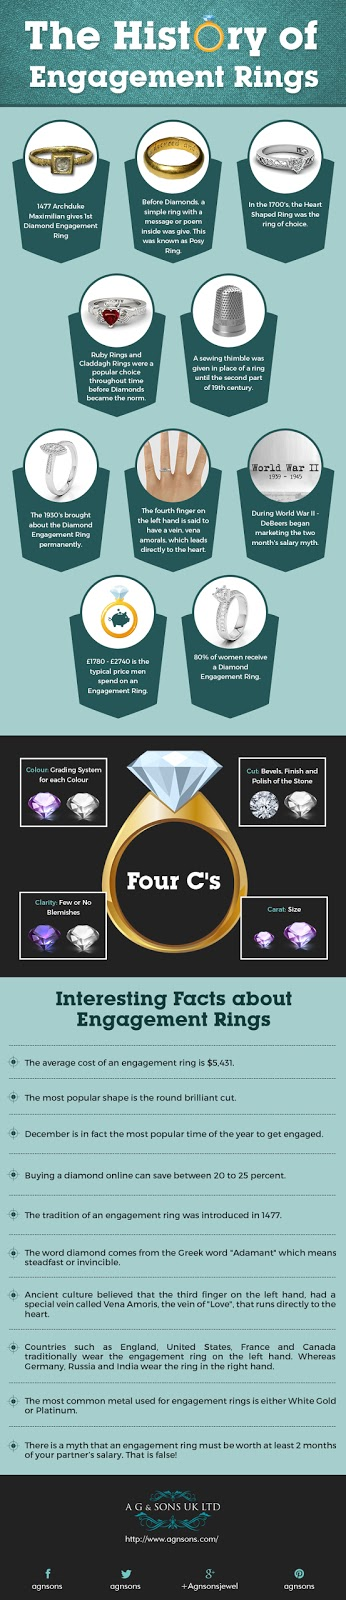 The History of Engagement Rings - Megha Shop